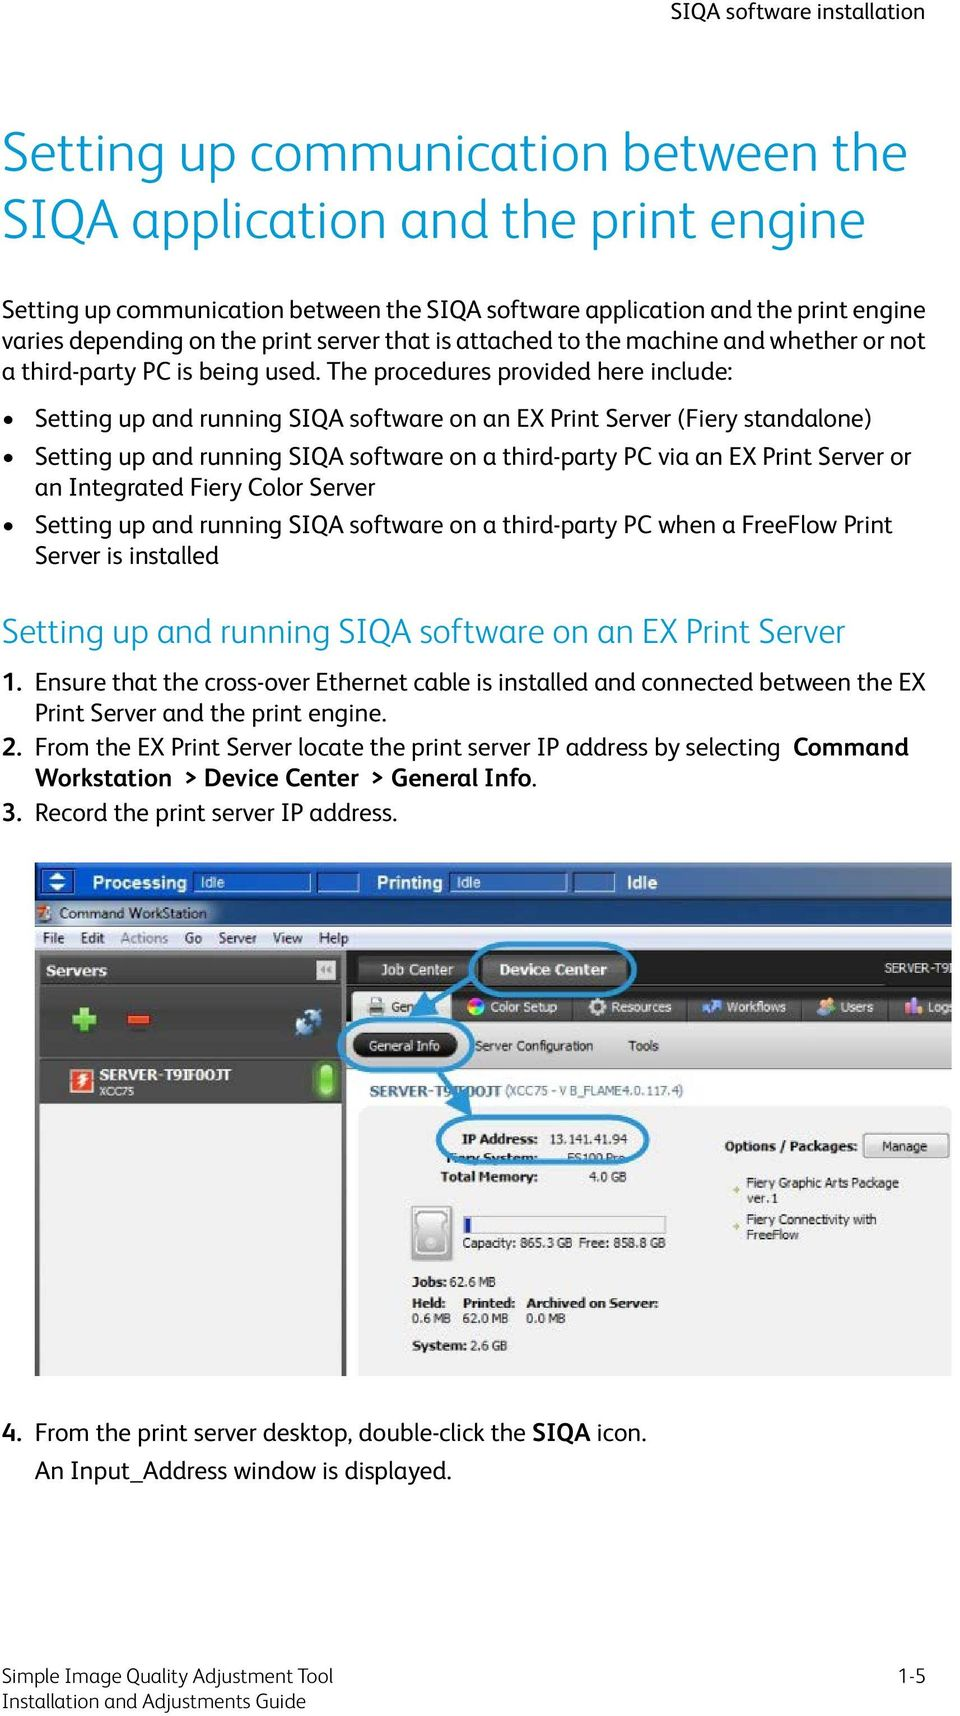 The procedures provided here include: Setting up and running SIQA software on an EX Print Server (Fiery standalone) Setting up and running SIQA software on a third-party PC via an EX Print Server or